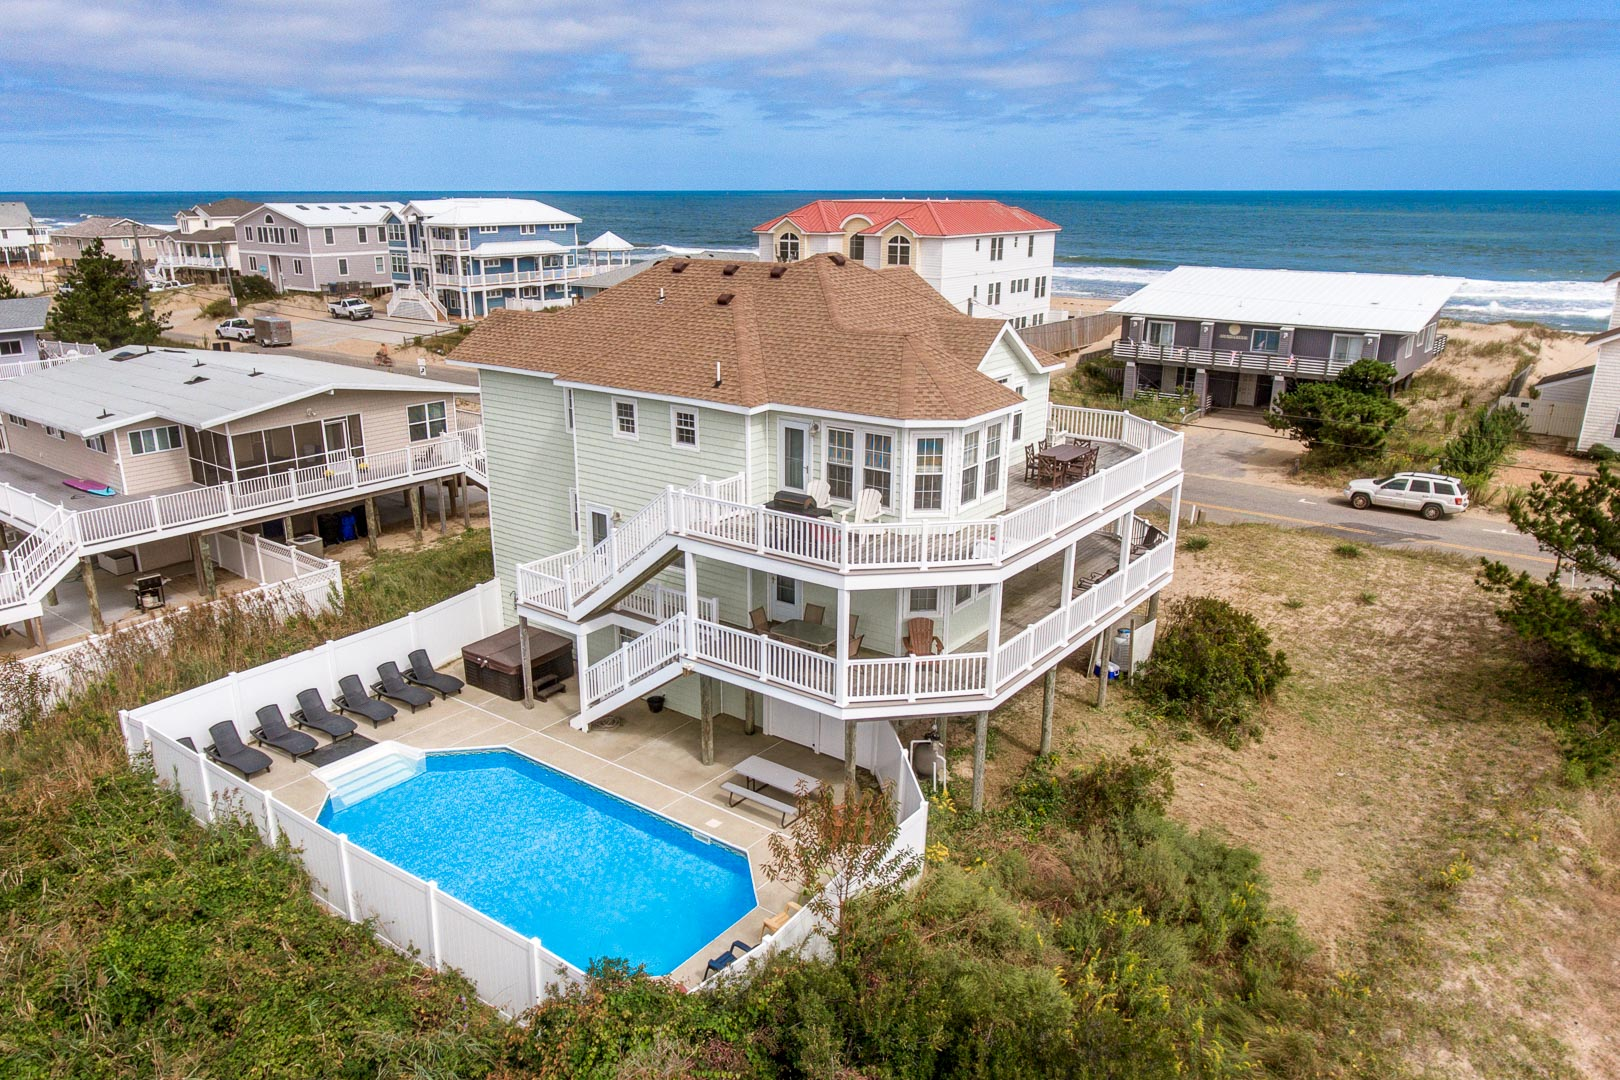 Chillaxin' (House) - Virginia Beach Vacation Rentals ...